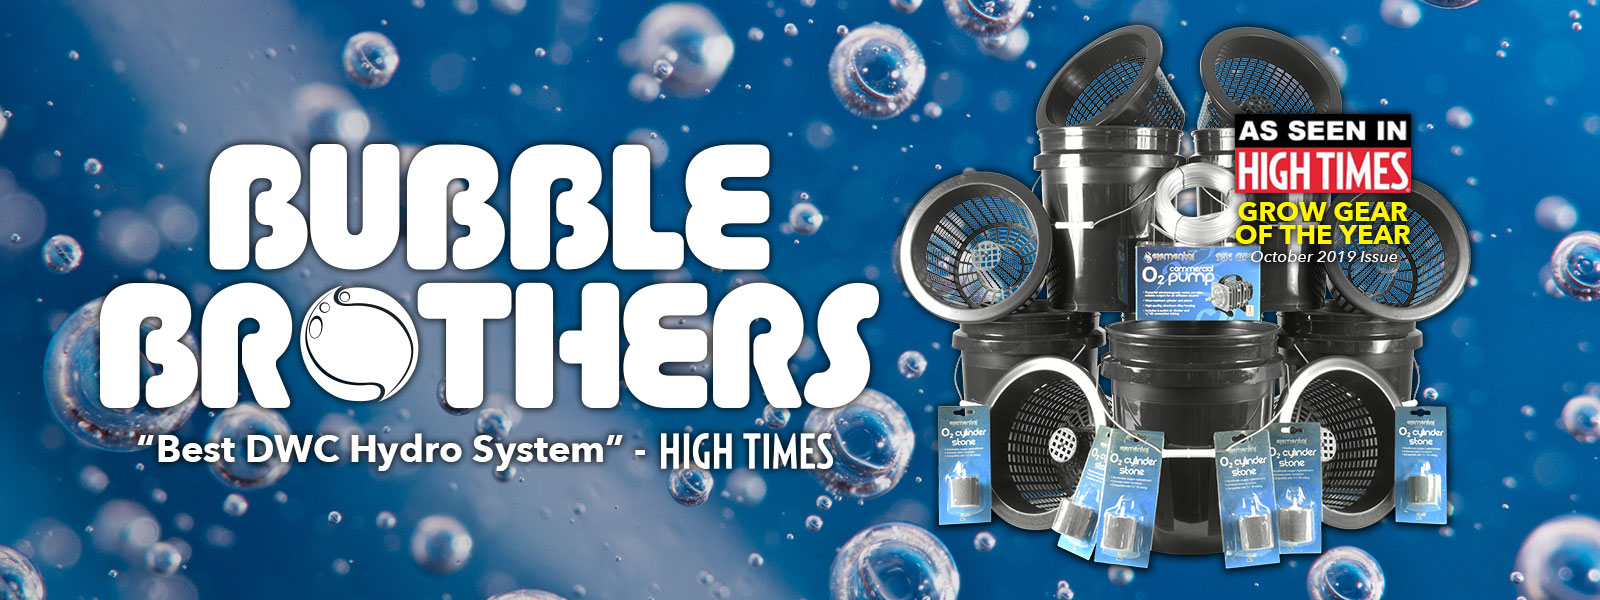 Best DWC Hydroponics Systems For Sale at HTG Supply